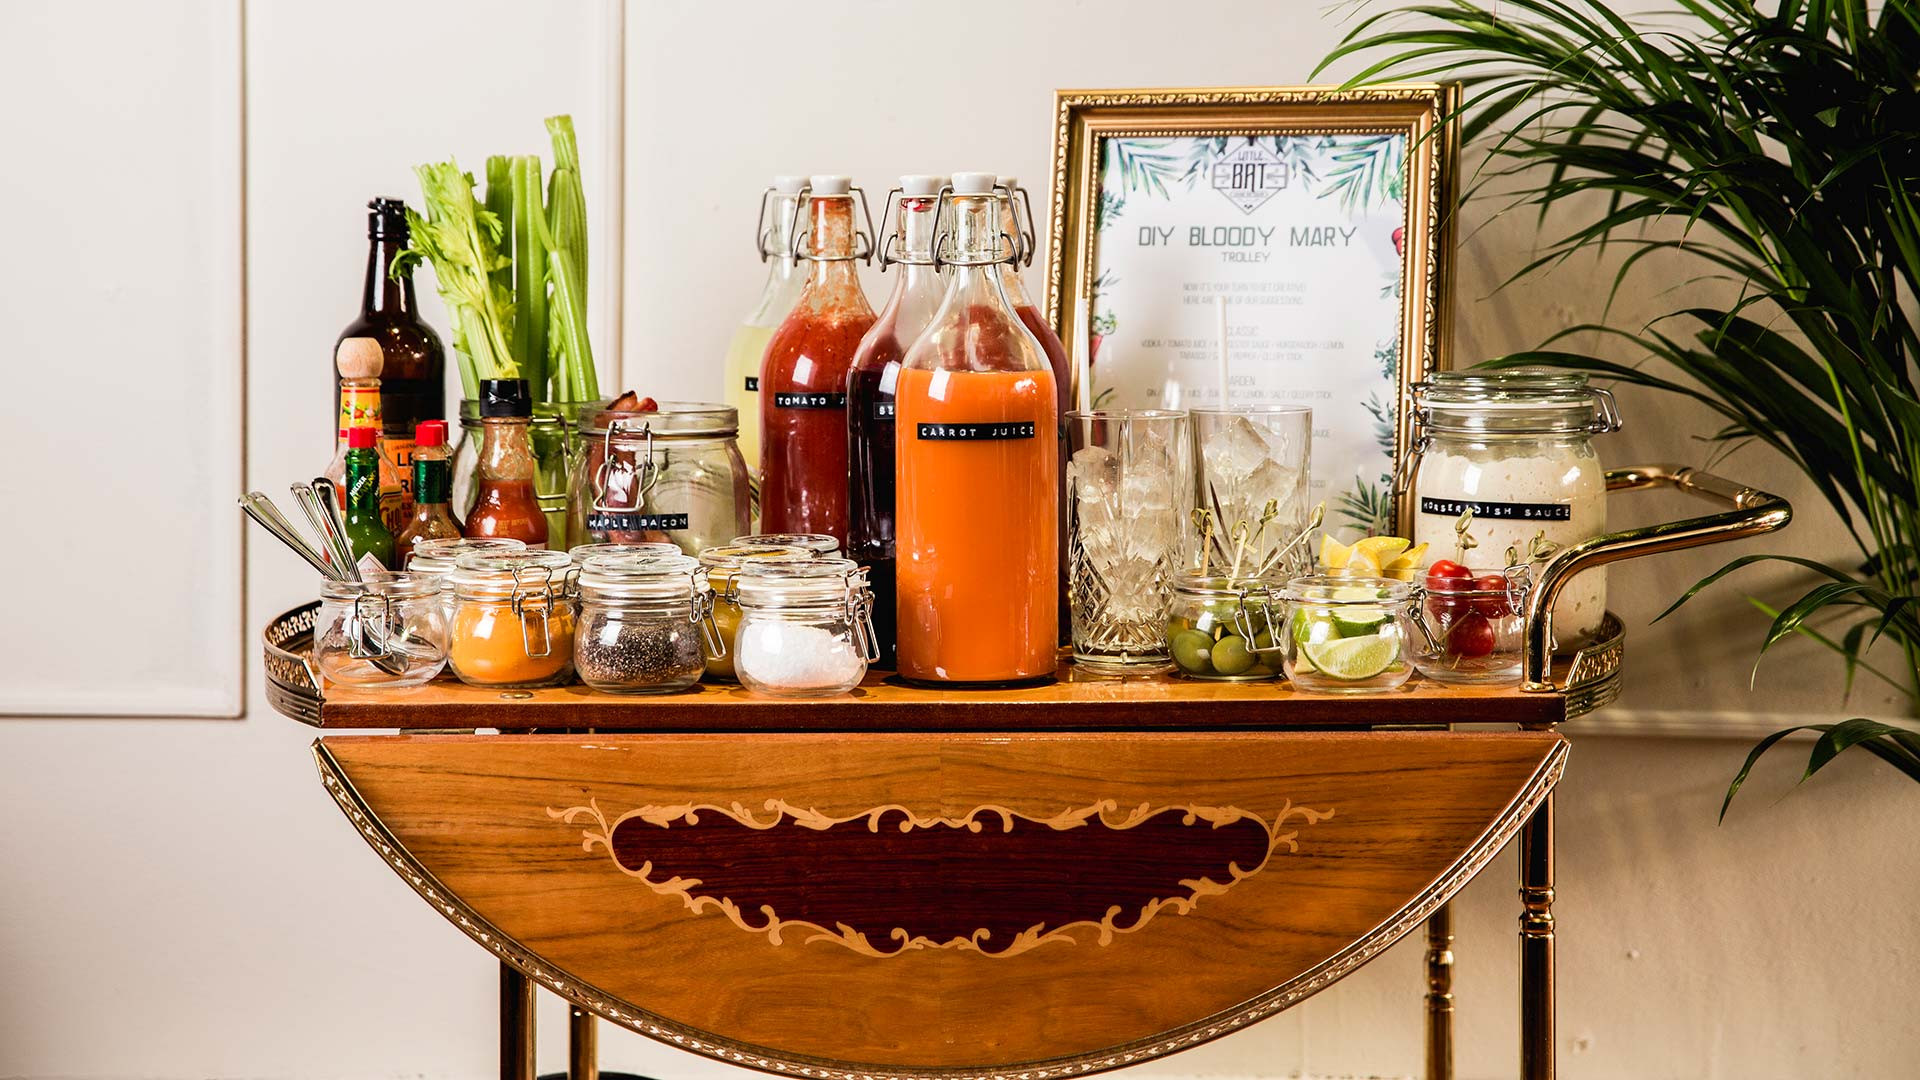 Little Bat's Bloody Mary trolley